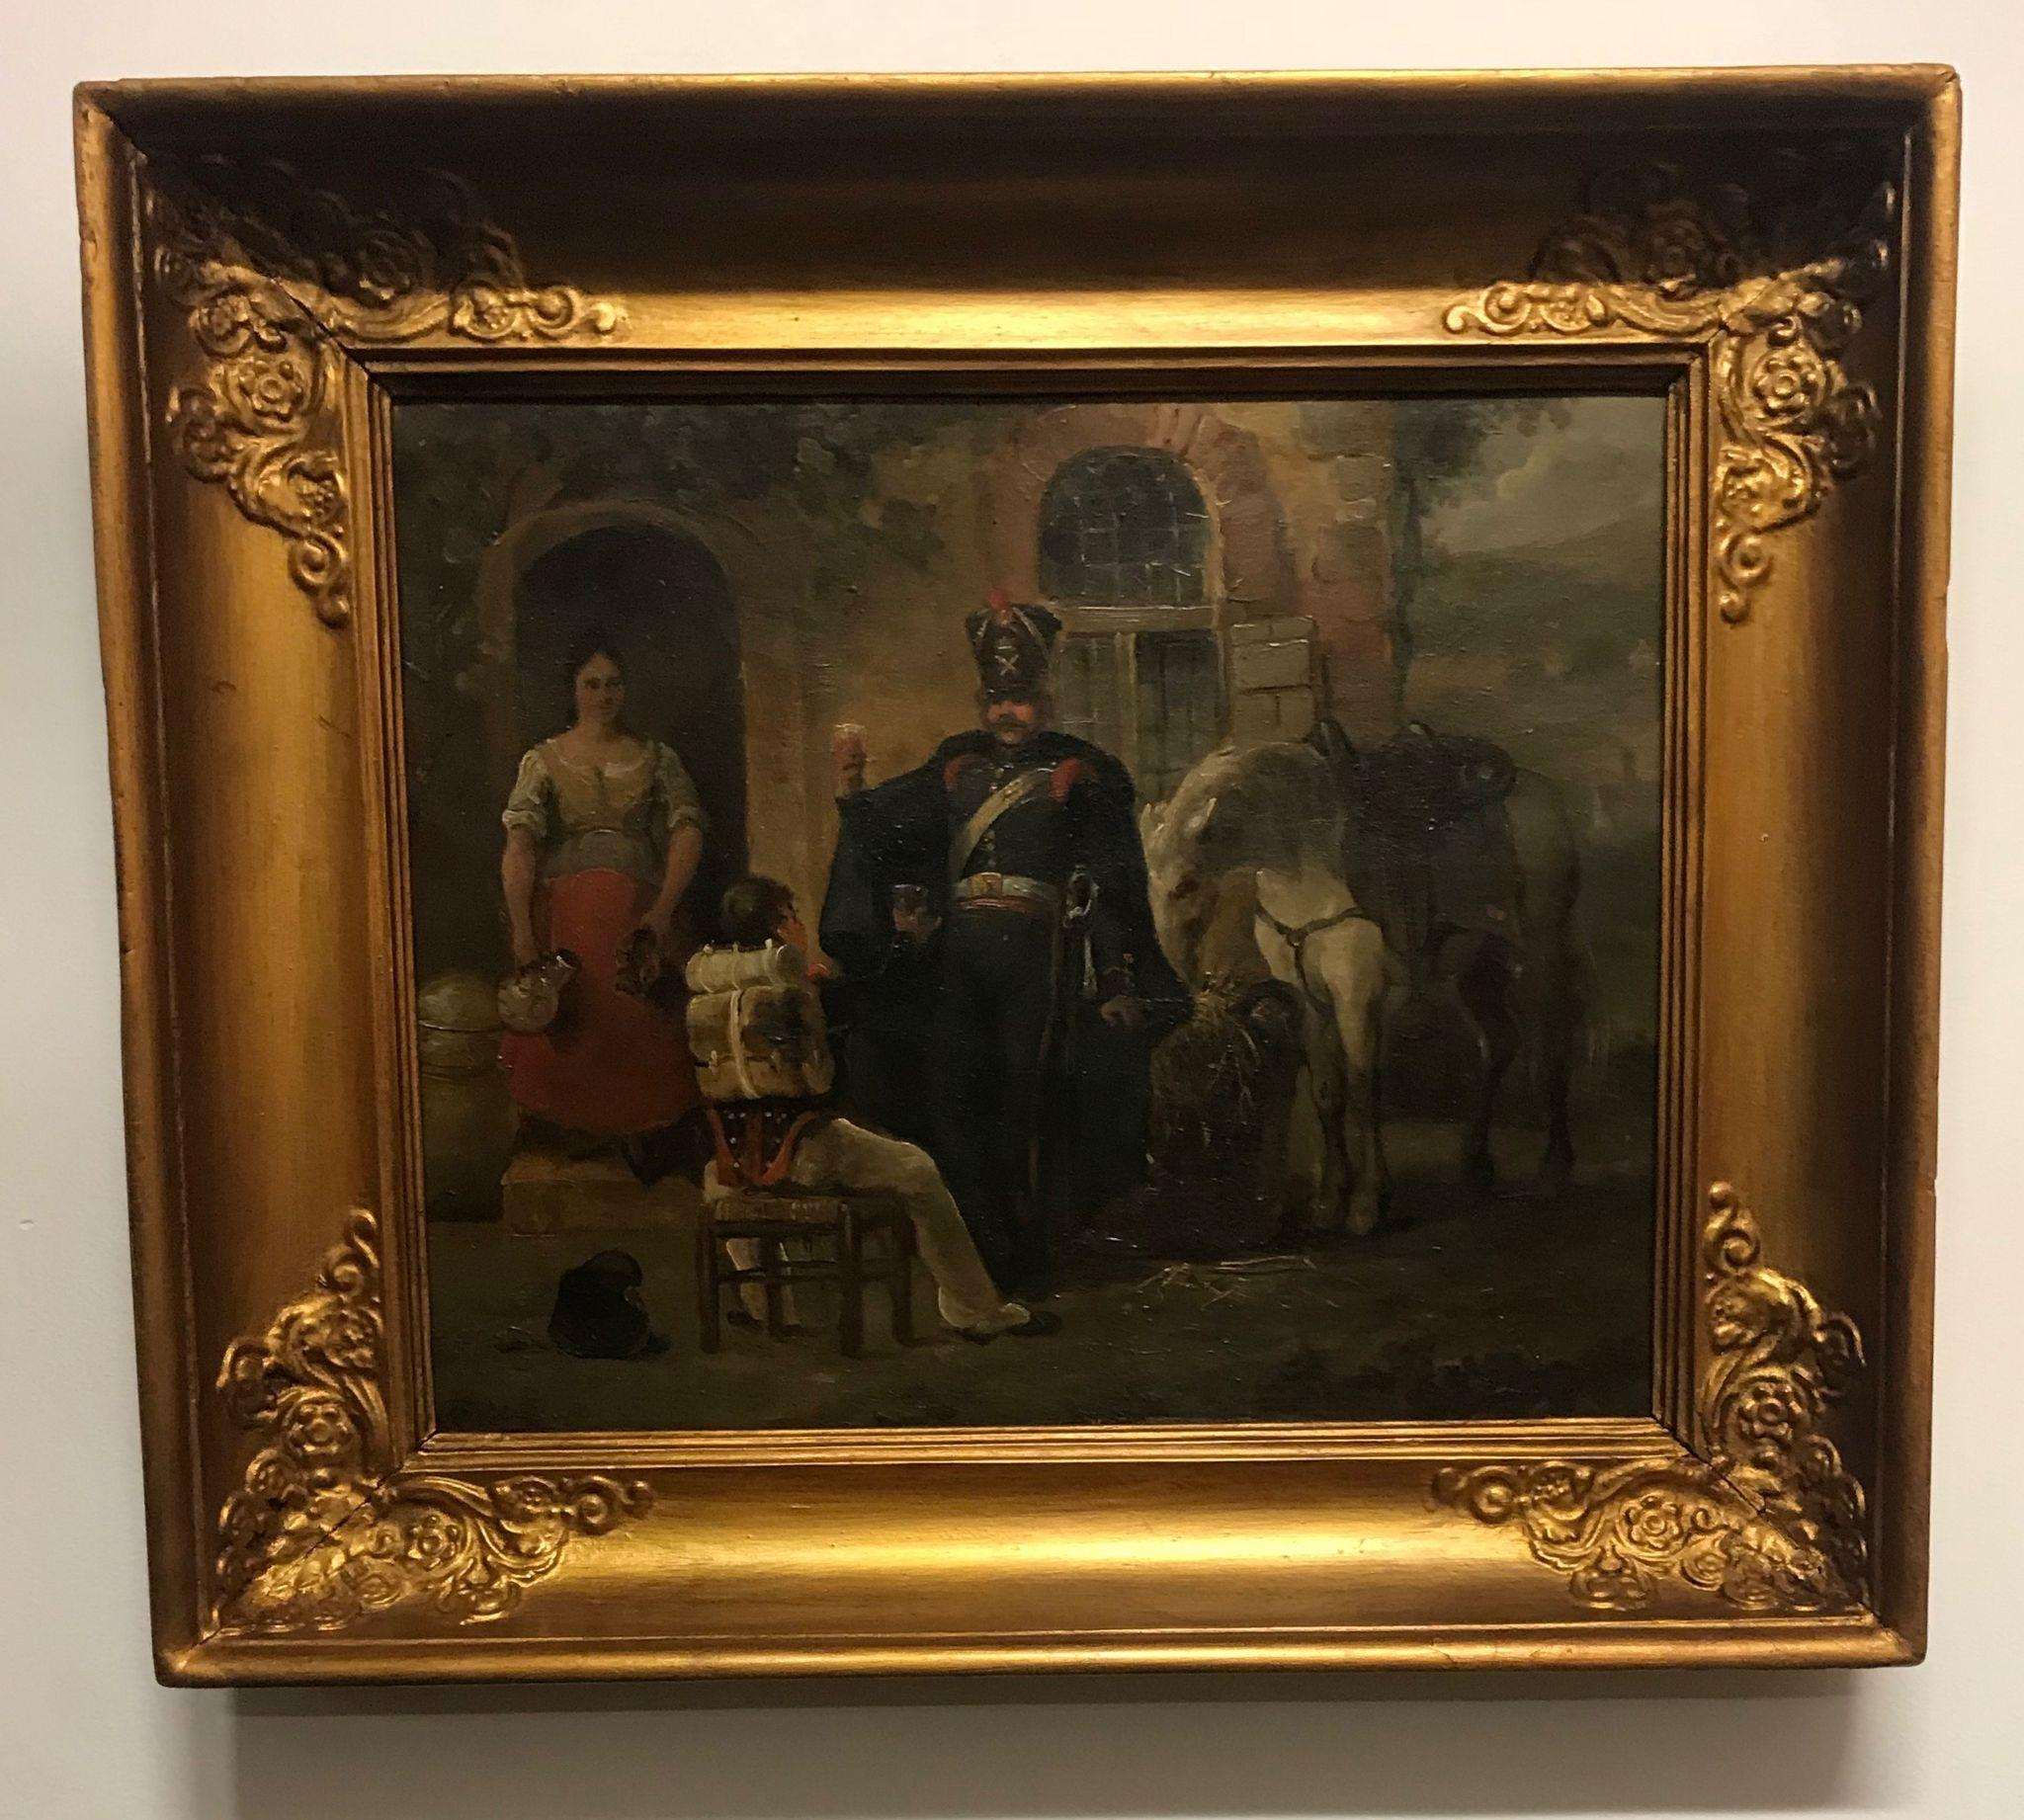 Antique French Fine Oil Painting with Soldiers on Wooden Panel in Frame